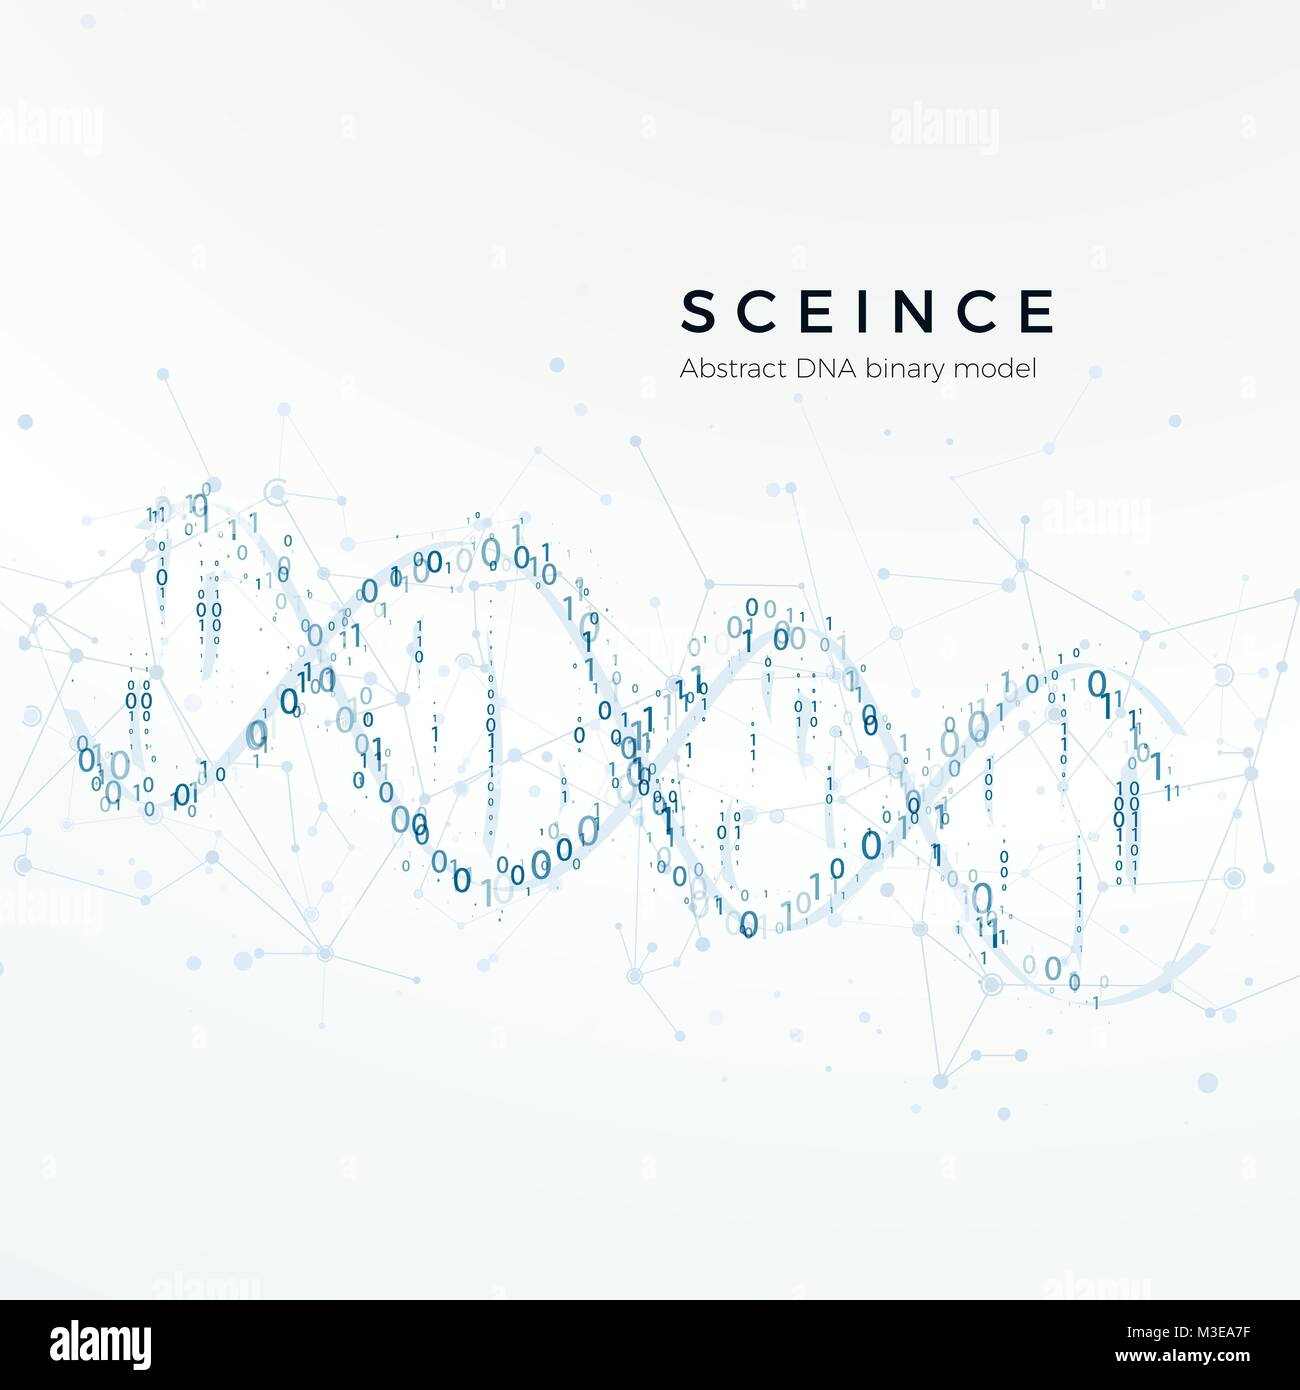 Abstract DNA binary model. Genetic code. Science and futuristic concept. vector illustration isolated on white - Stock Image